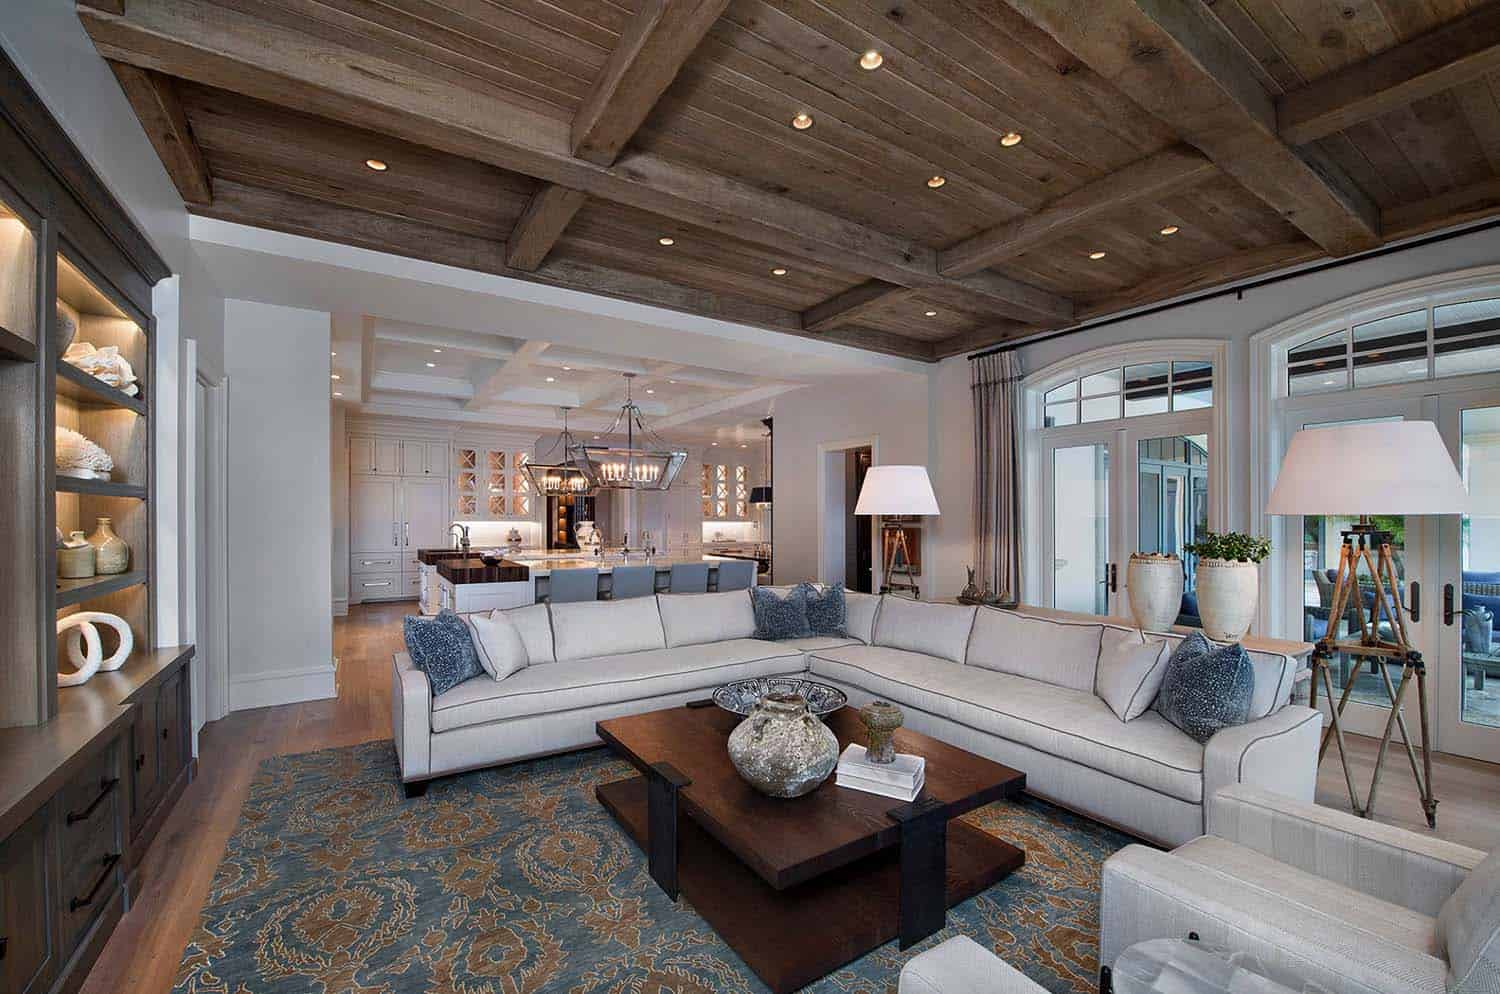 Luxury Waterfront Home-W Design Interiors-02-1 Kindesign